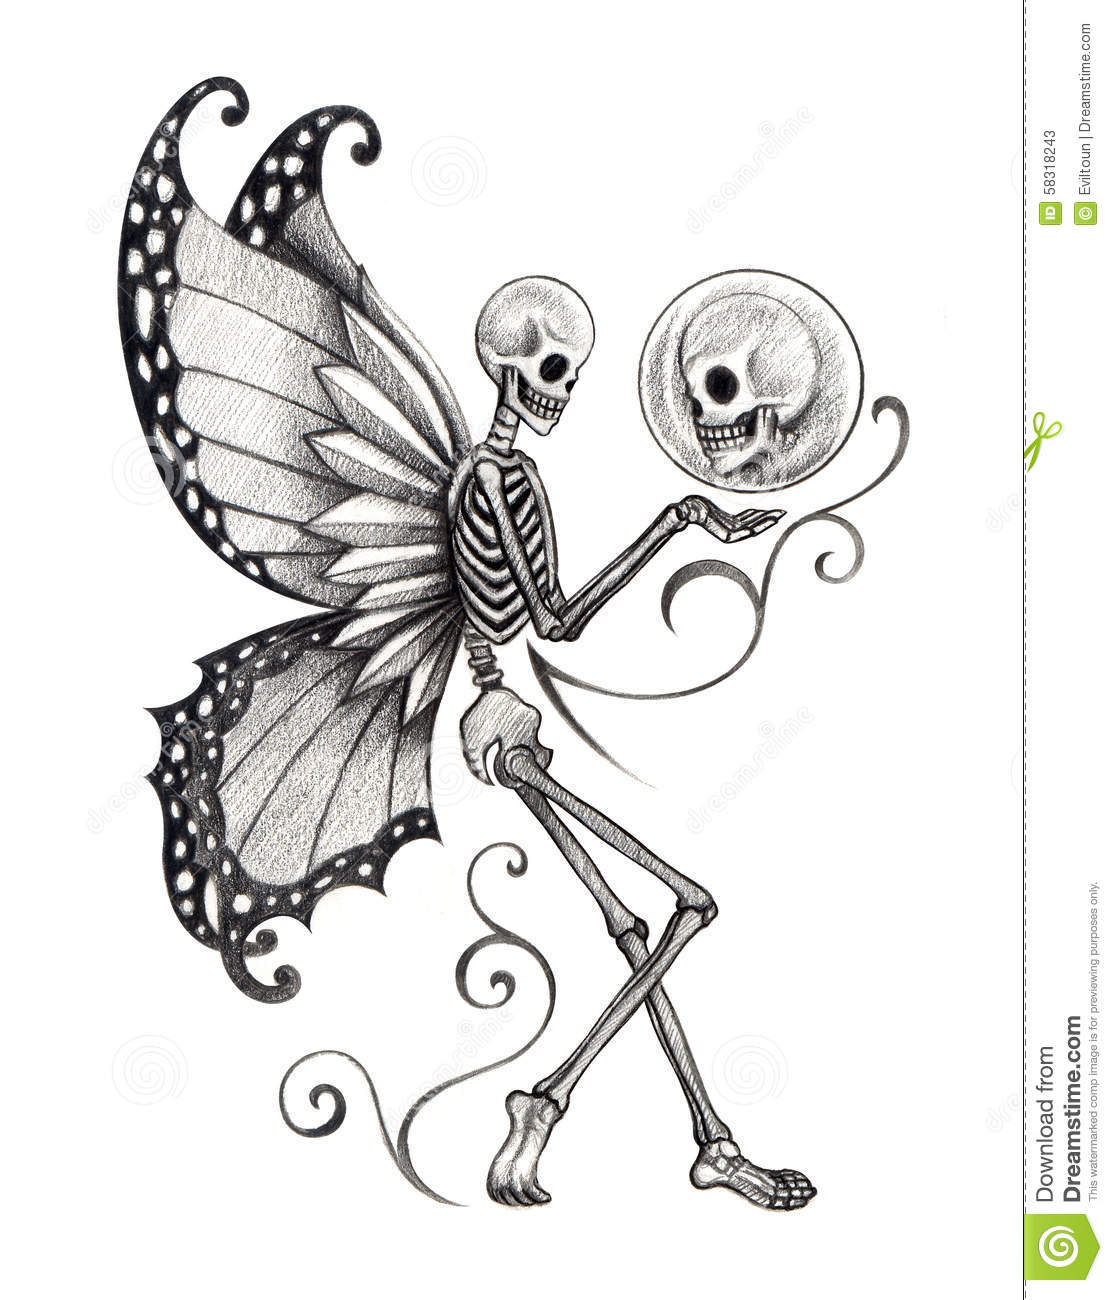 art skull fairy tattoo stock illustration image 58318243. Black Bedroom Furniture Sets. Home Design Ideas